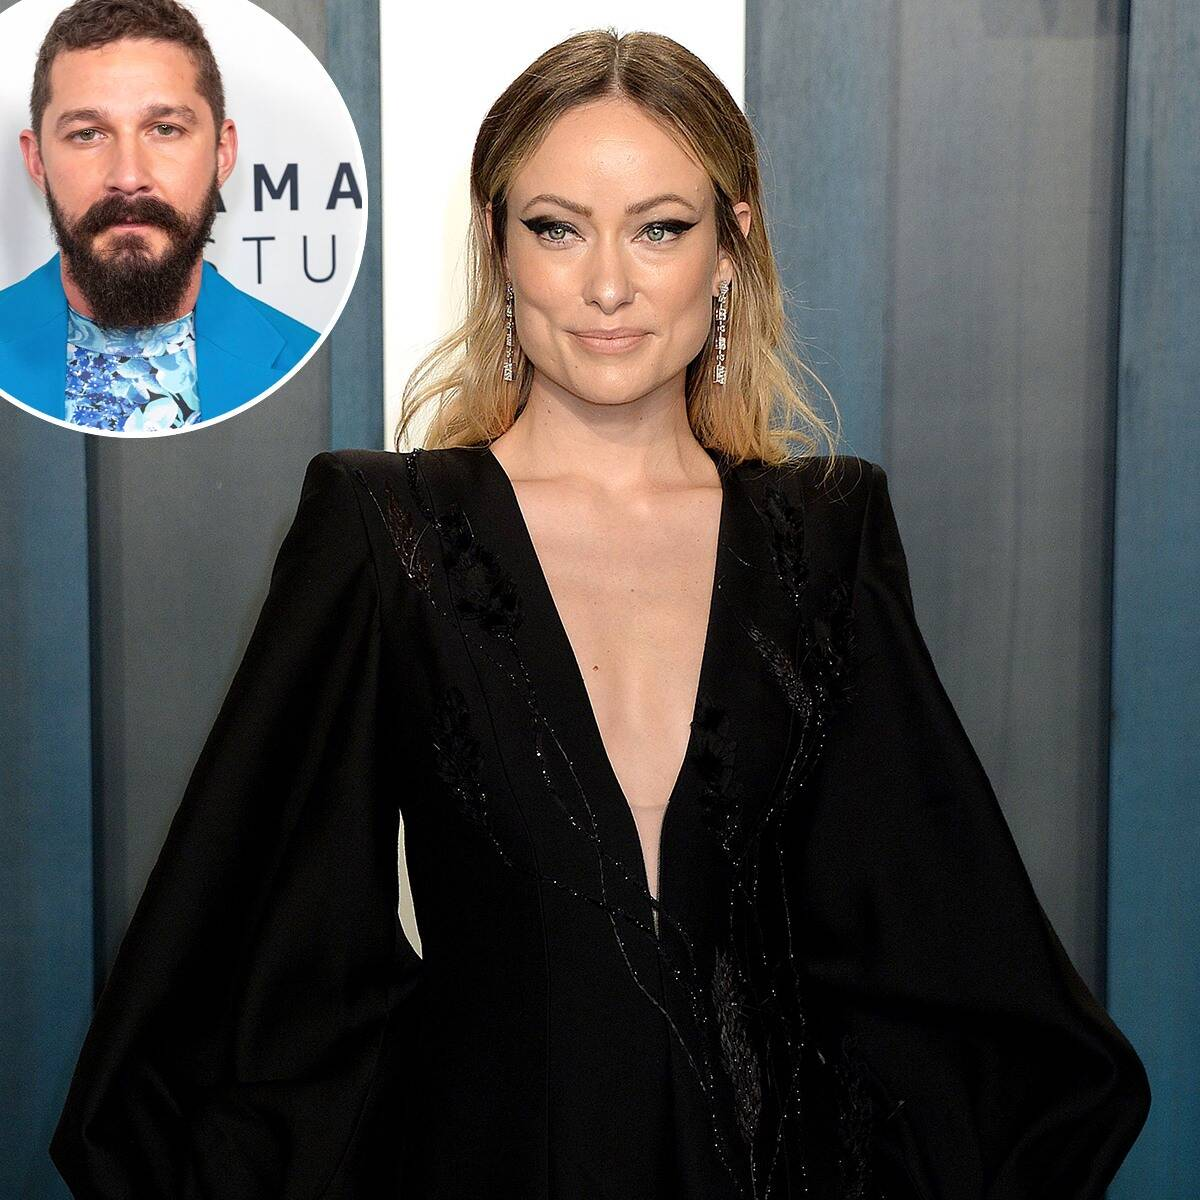 Olivia Wilde Reportedly Fired Shia LaBeouf From Her Upcoming Film 'Don't Worry Darling' – Here's Why!